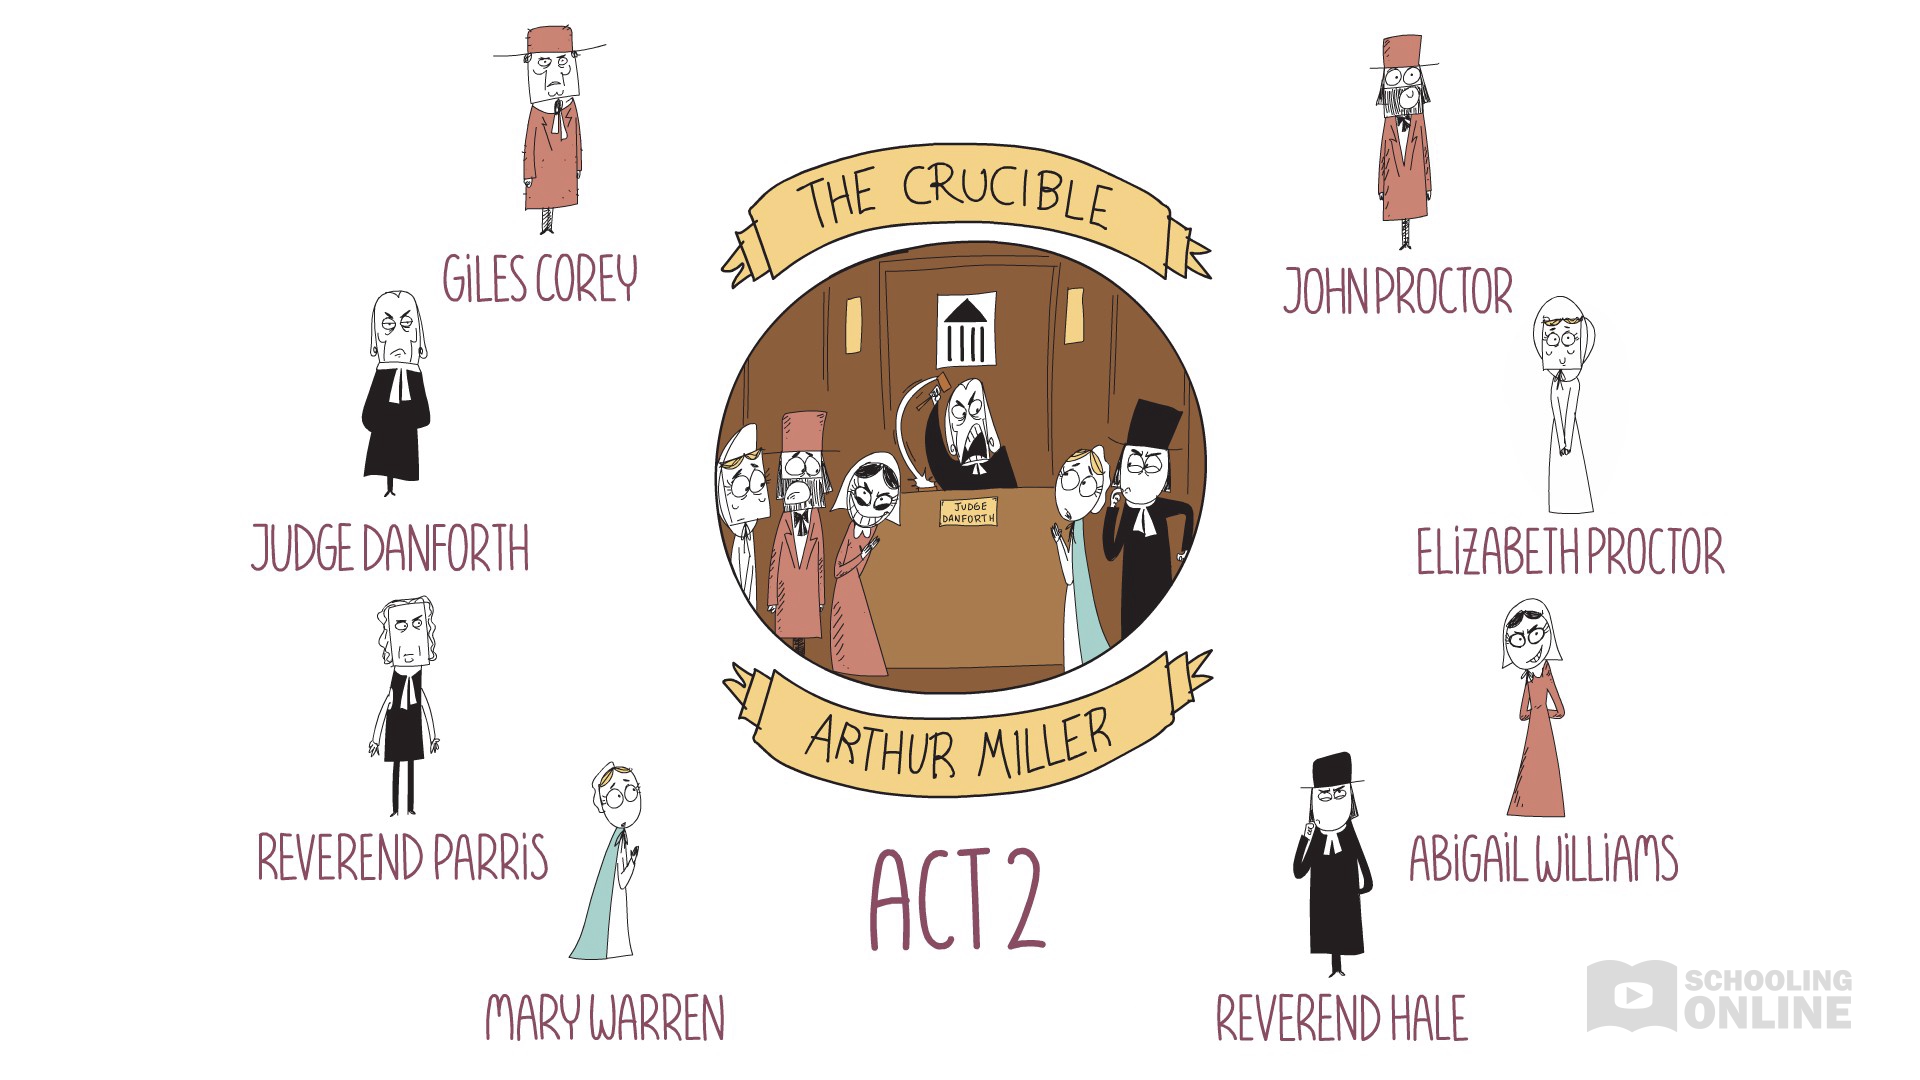 The Crucible - Arthur Miller - Act 2 Summary - Destroying Drama Series